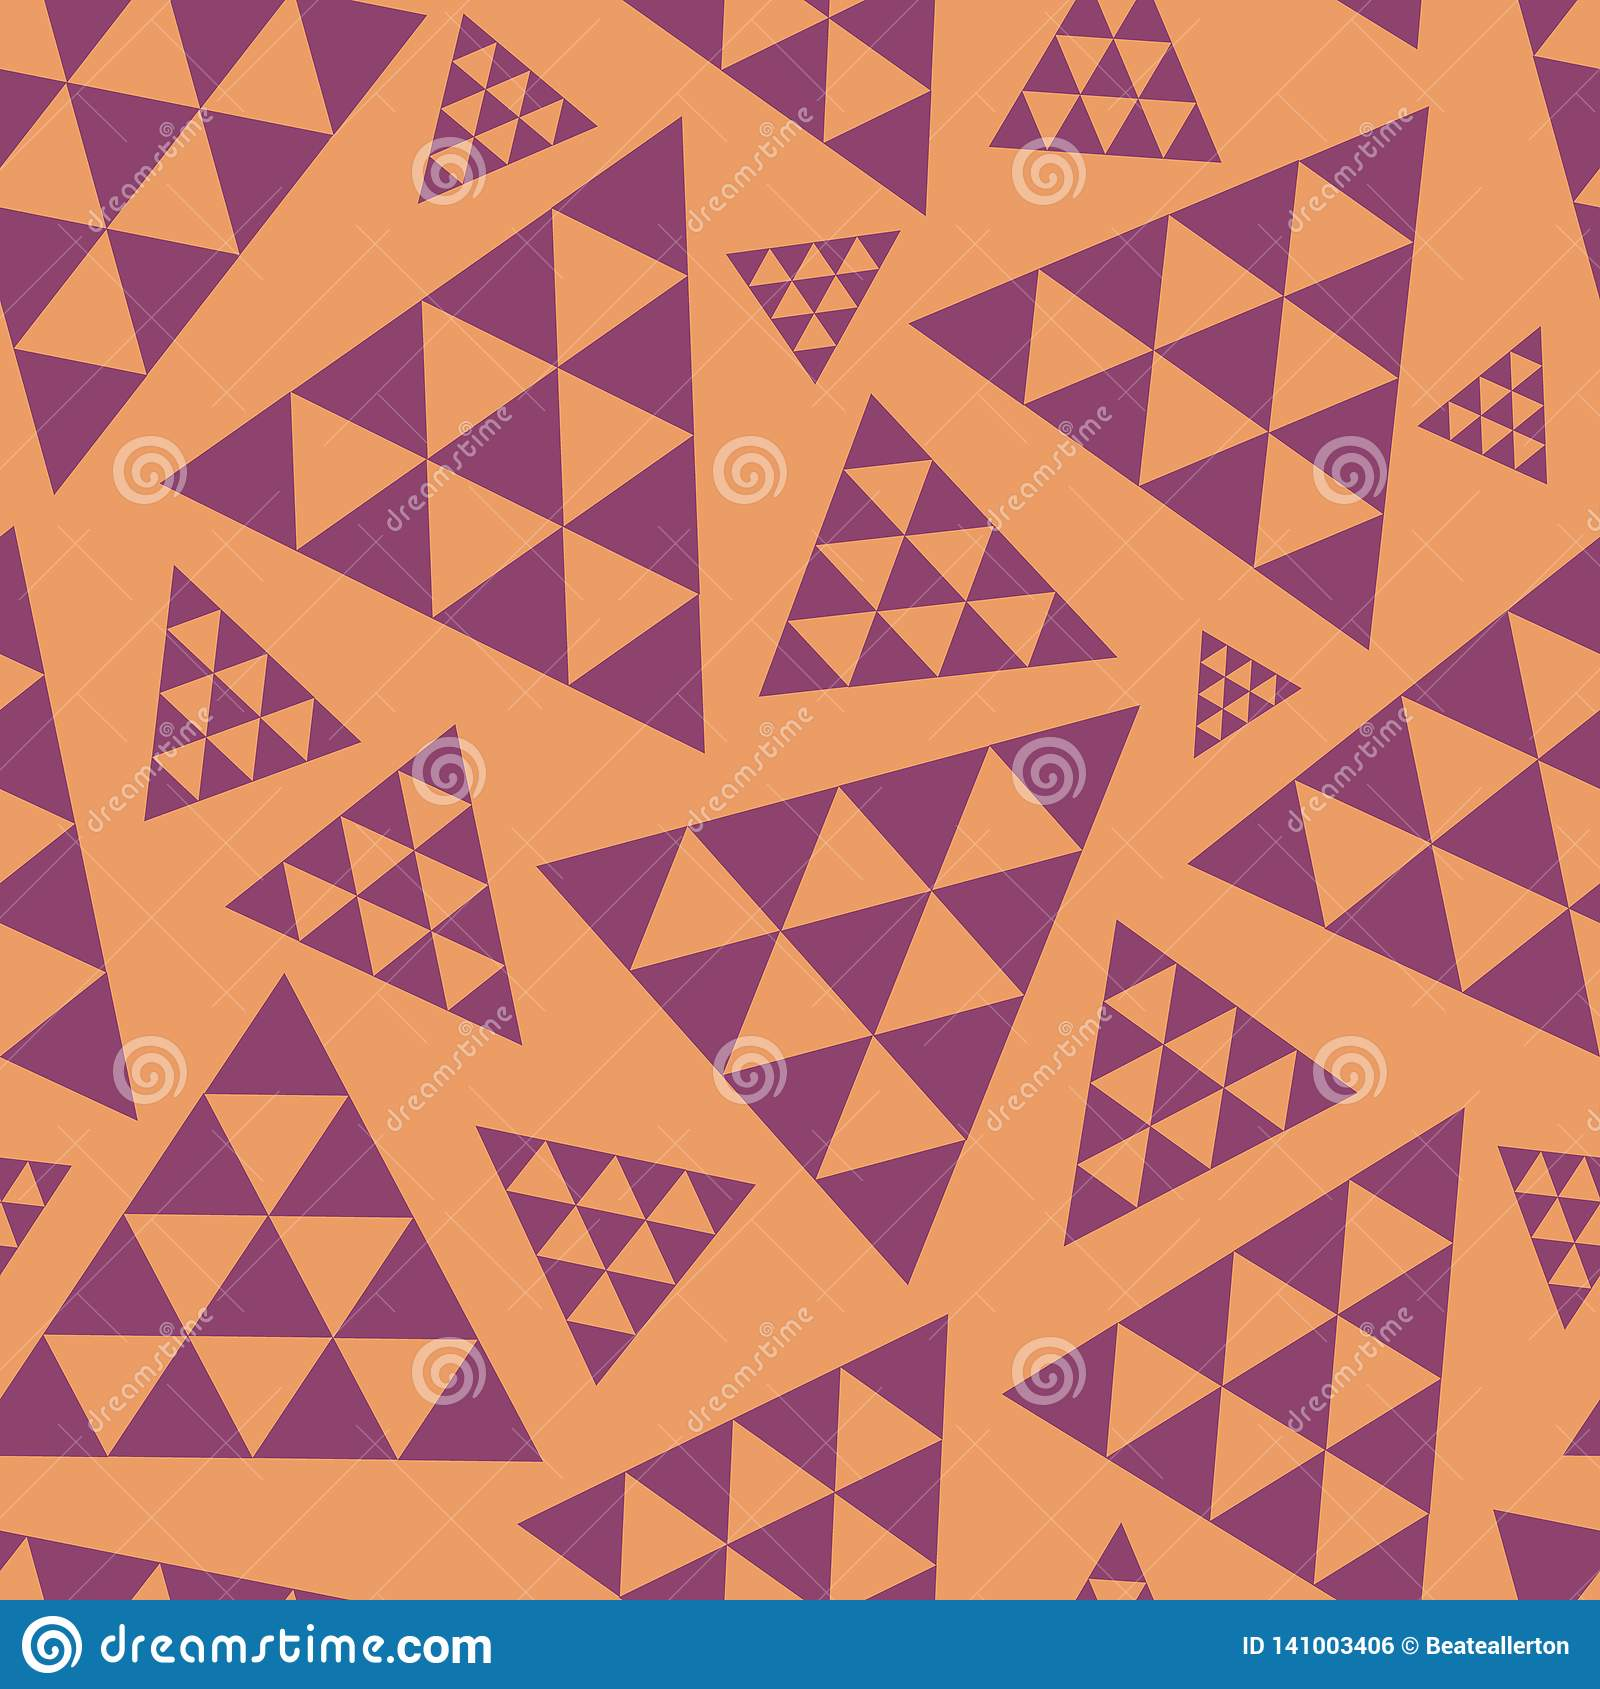 Orange and purple random triangle repeat vector pattern. Modern lively boho vibe. Great for yoga, beauty products, home